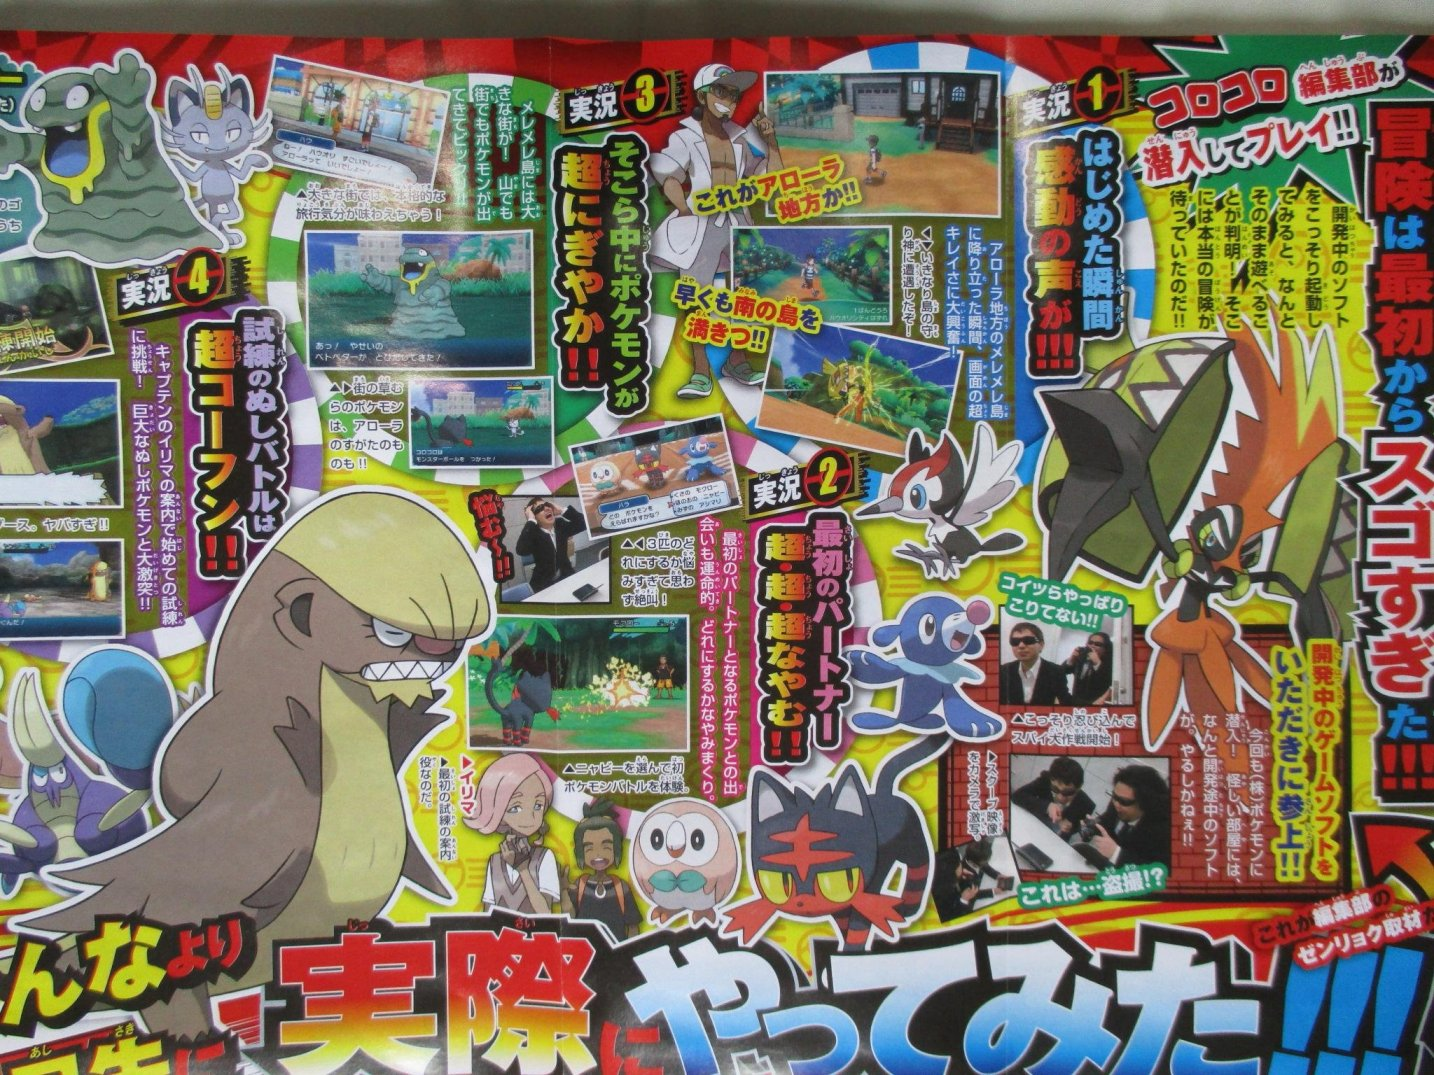 [JEUX VIDEO] Pokémon : Attrapez-les Tous!! (Nintendo) - Page 5 Ilimia-Trial-Captain-CoroCoro